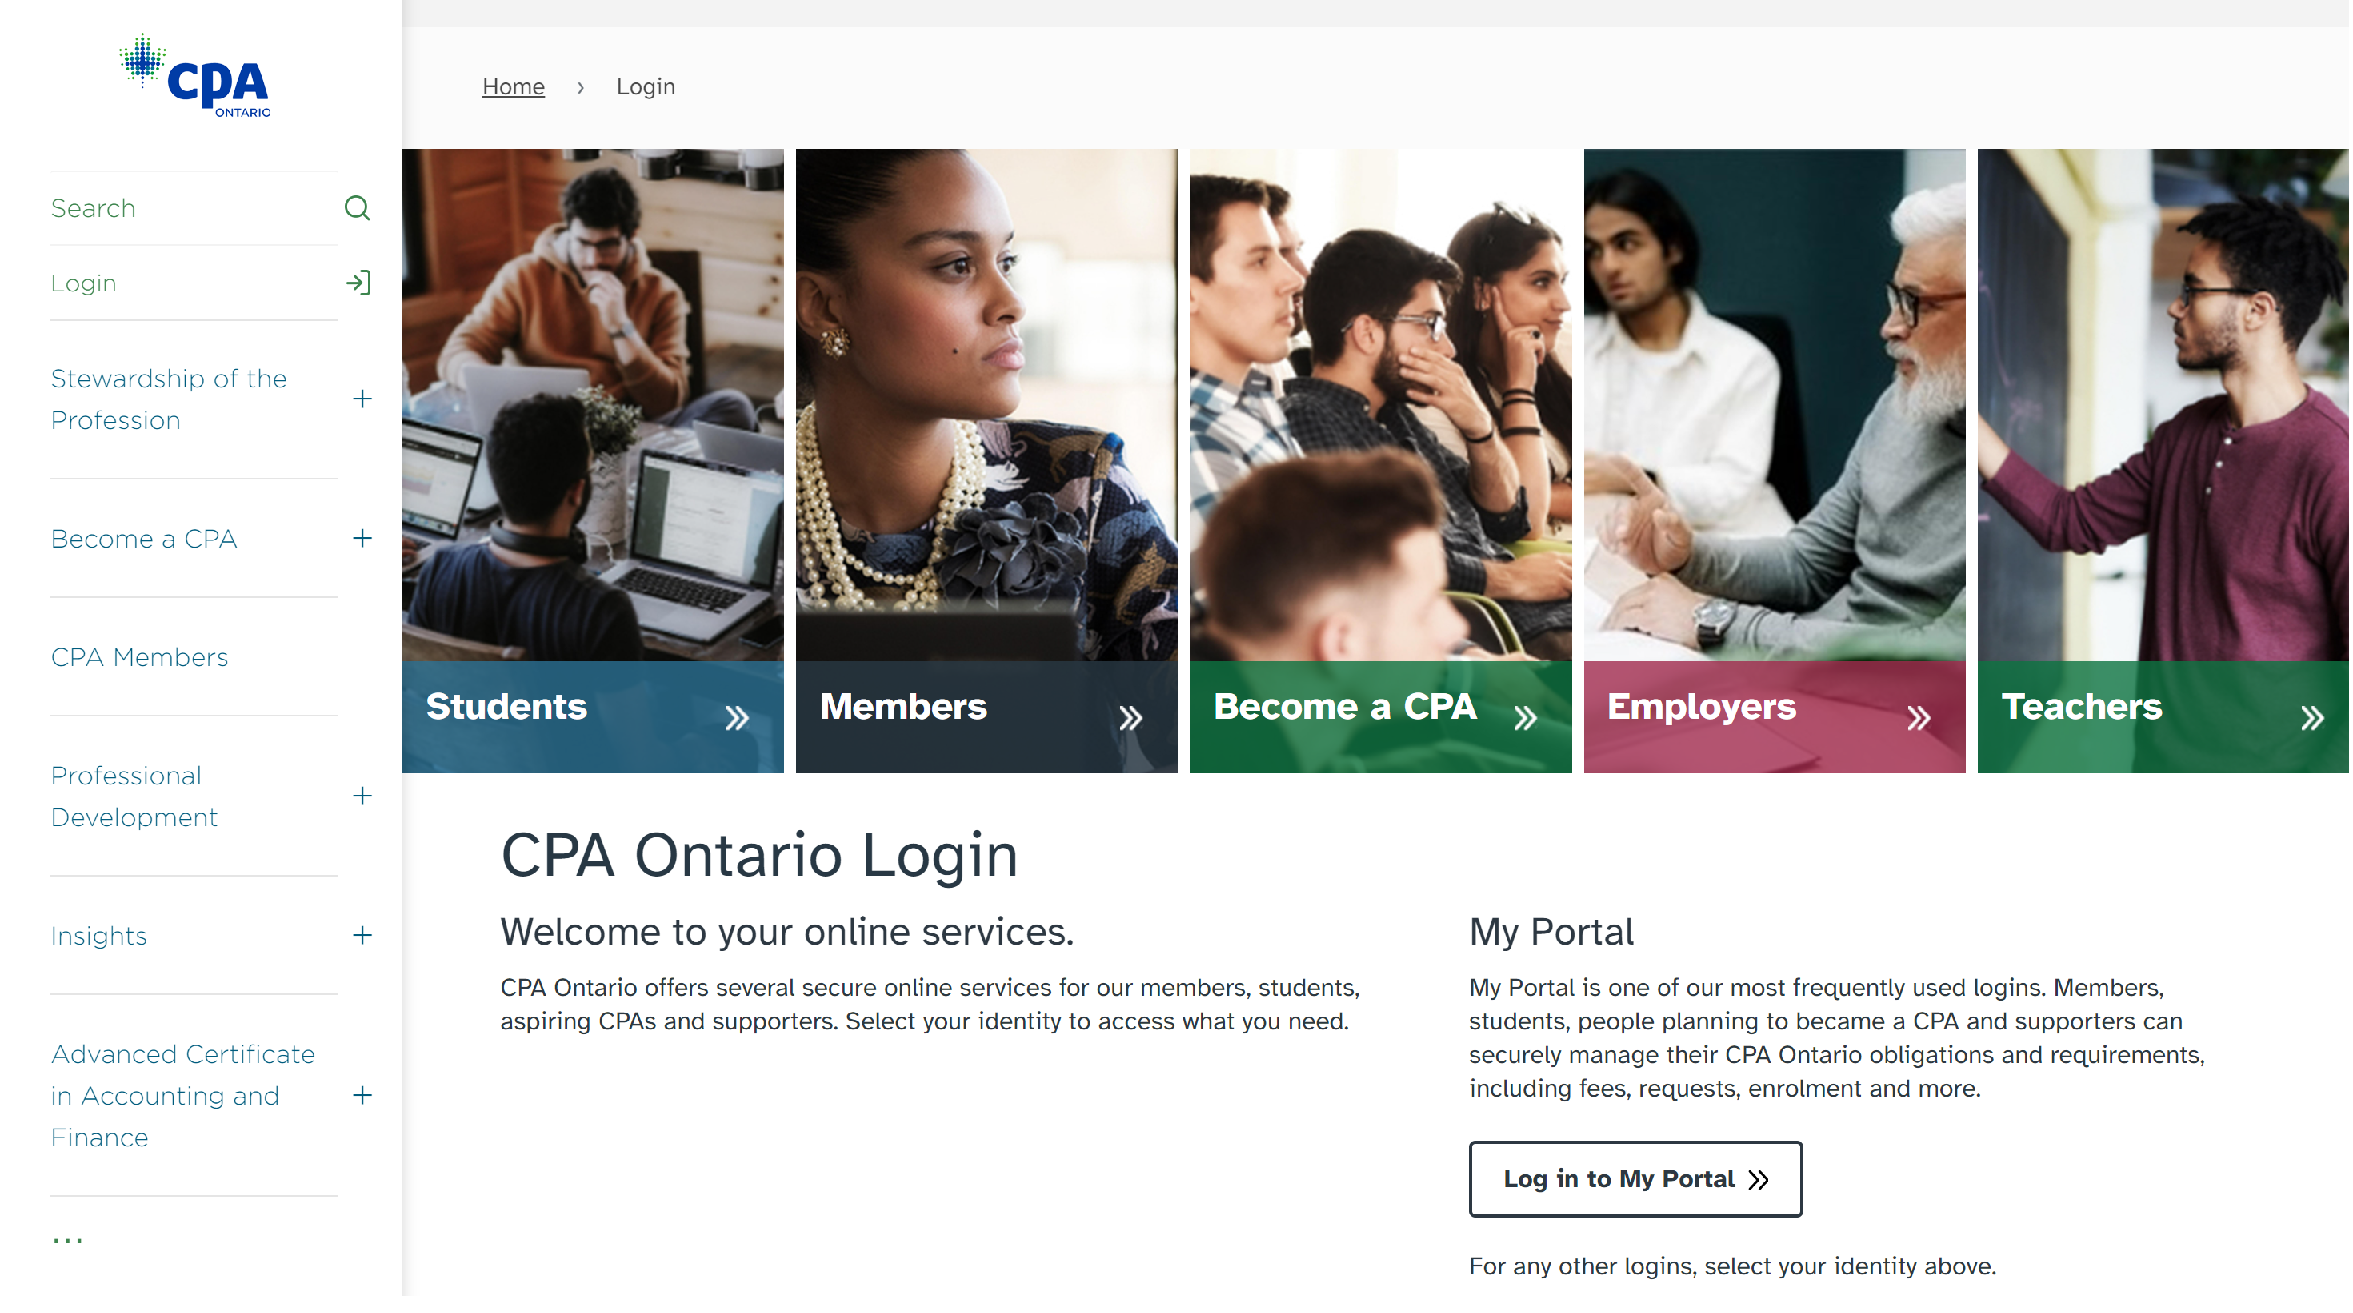 Faster User Experience and Improved Content Management for CPA Ontario